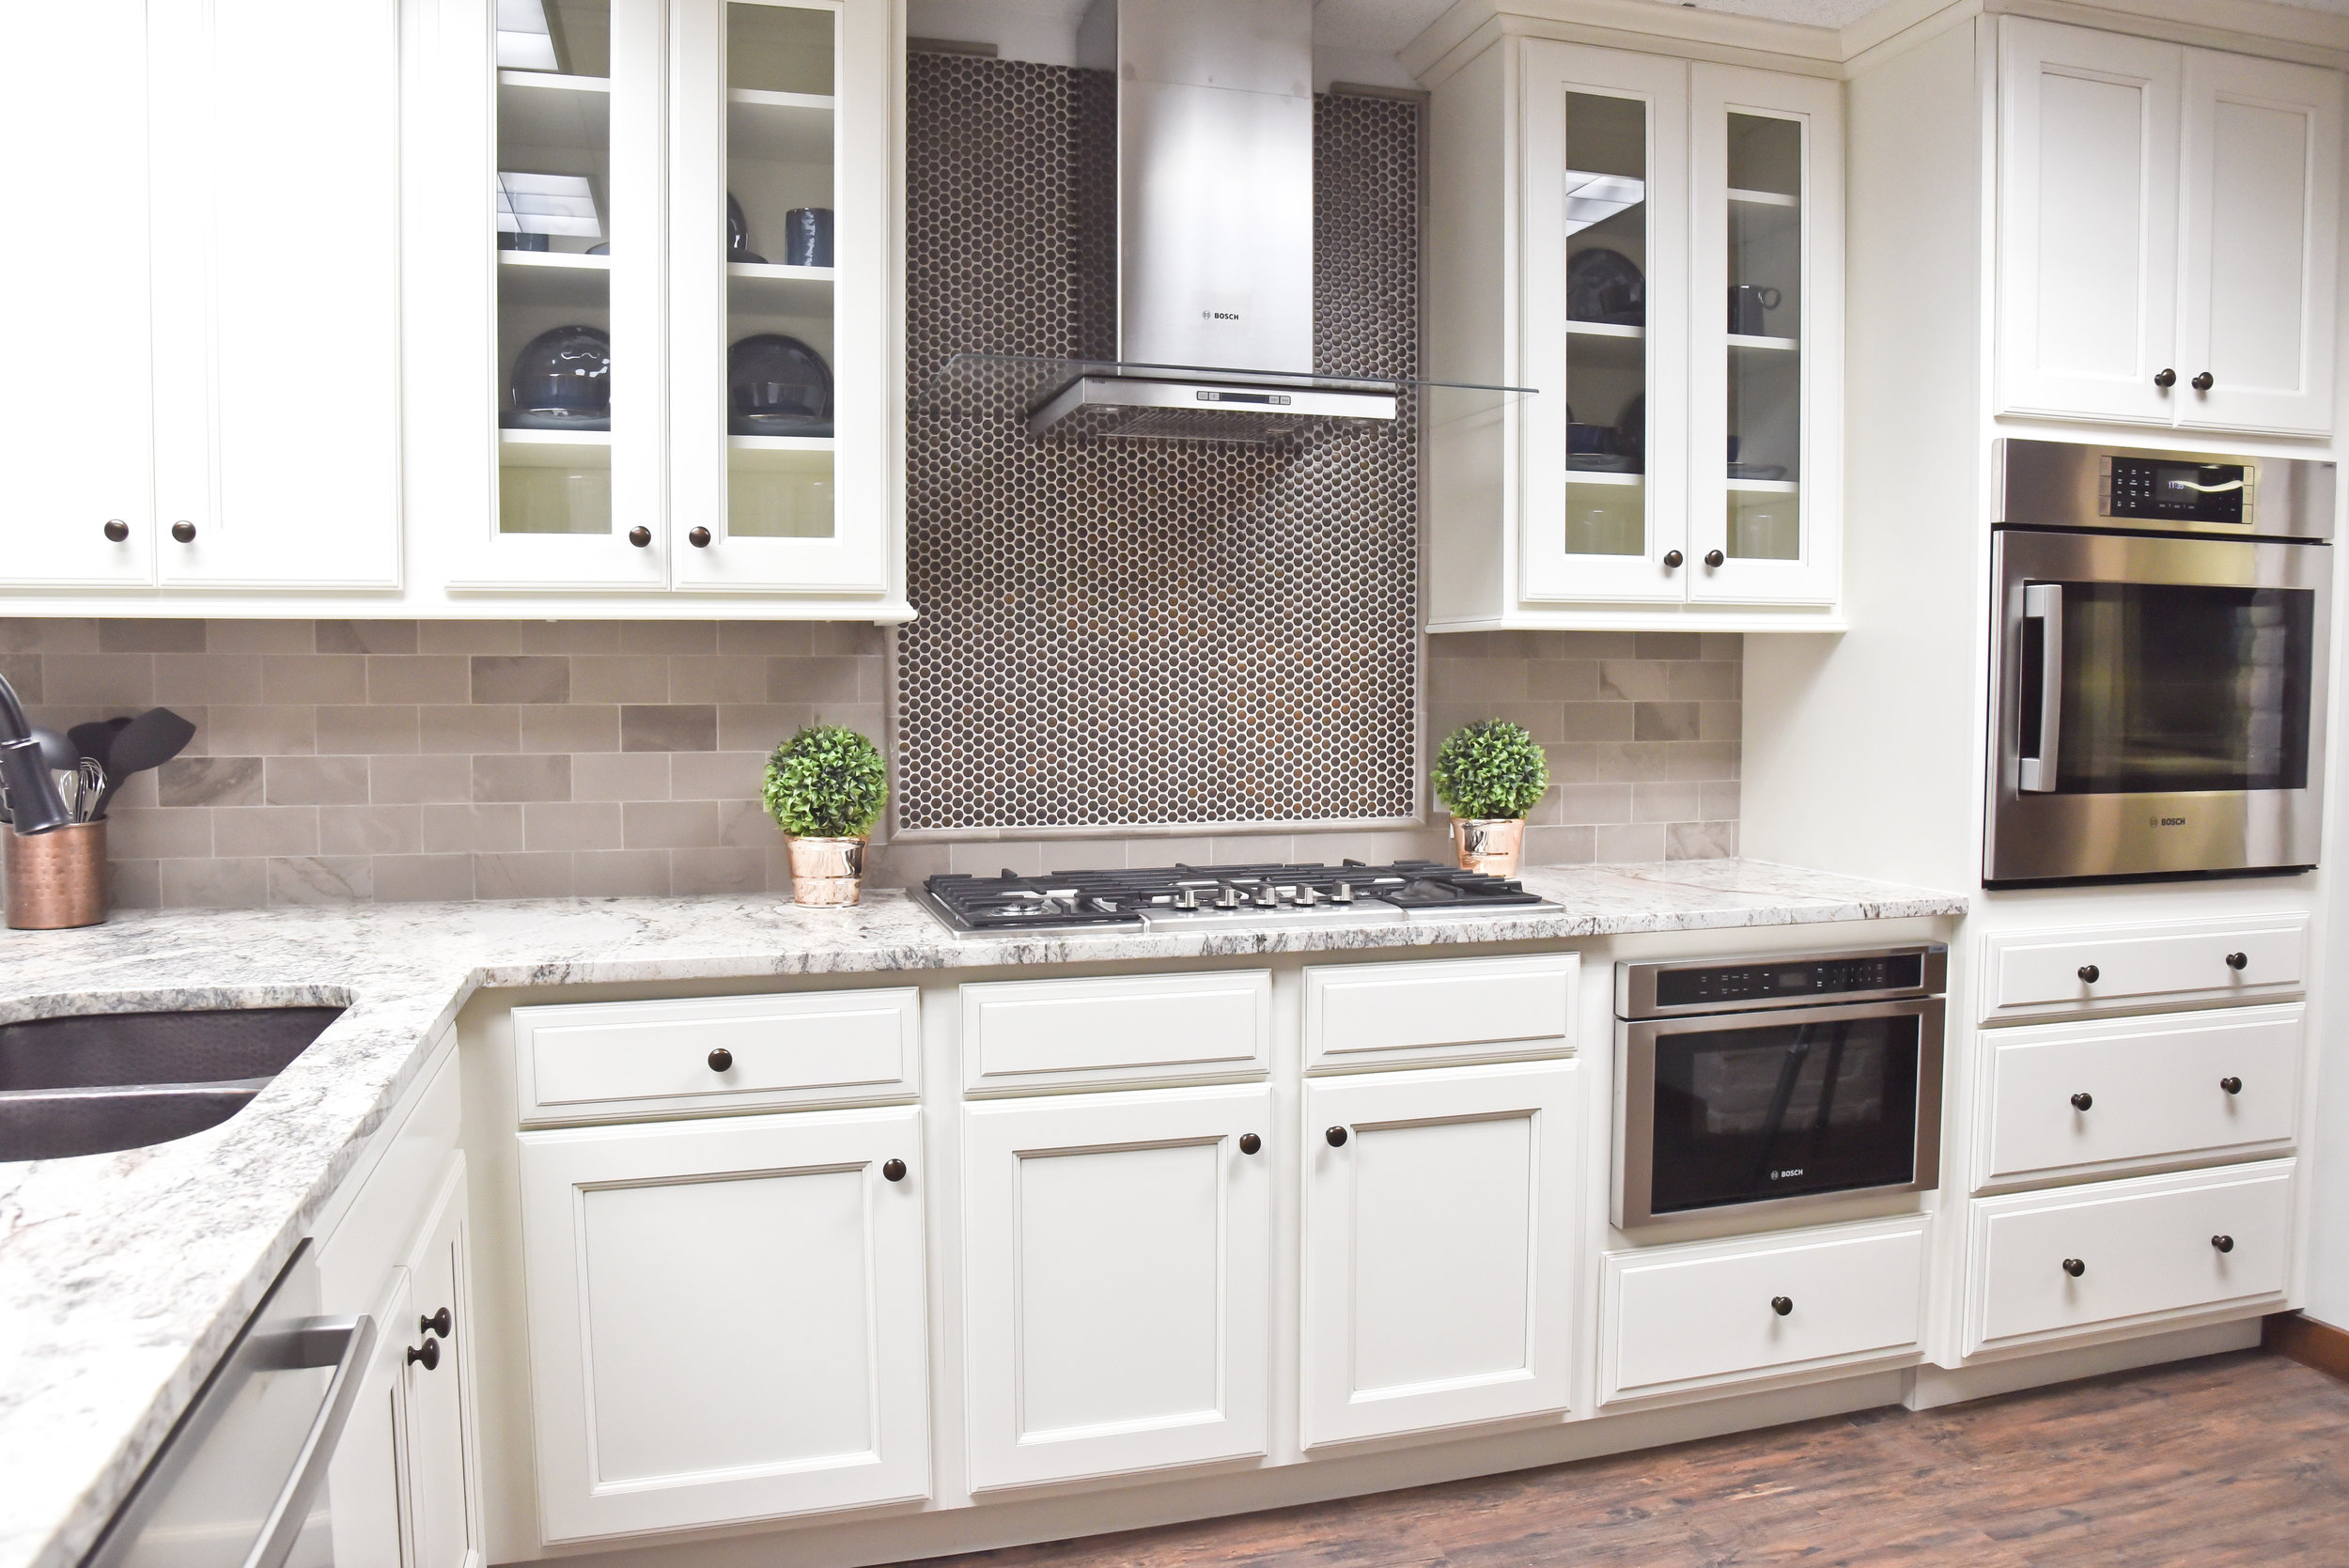 cabinetree | kitchen and bathroom cabinetry showroom in houston